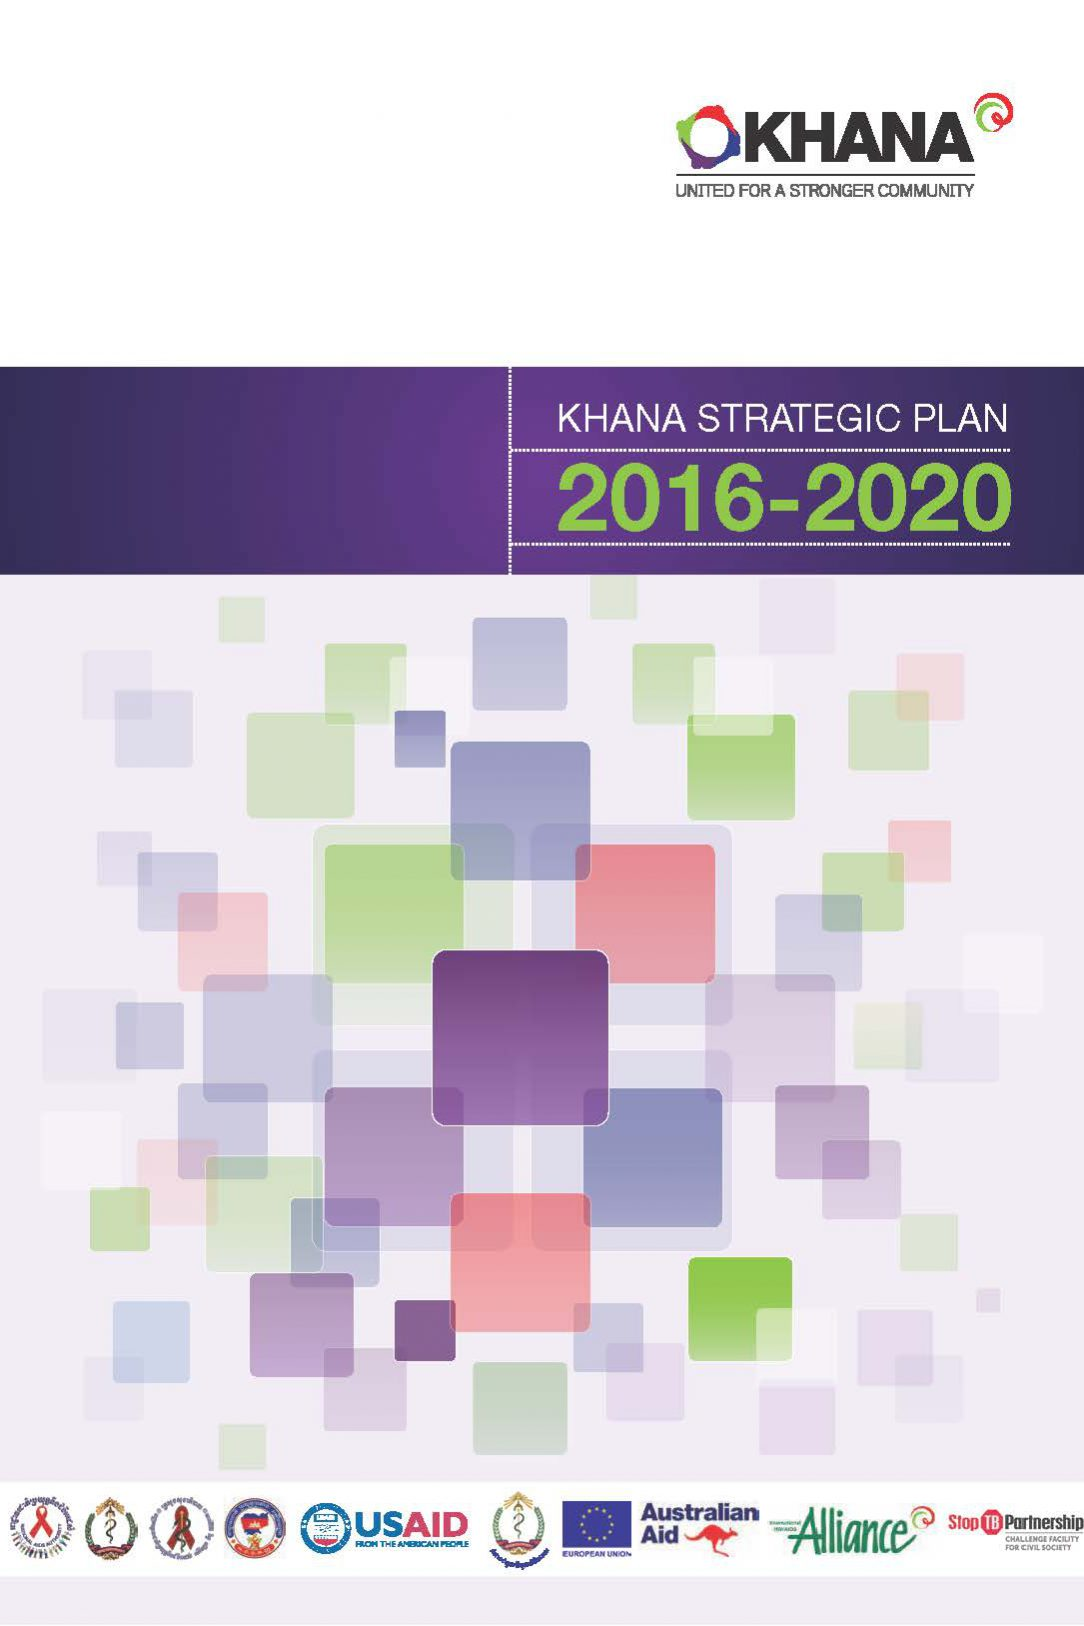 KHANA Strategic Plan 2016-2020